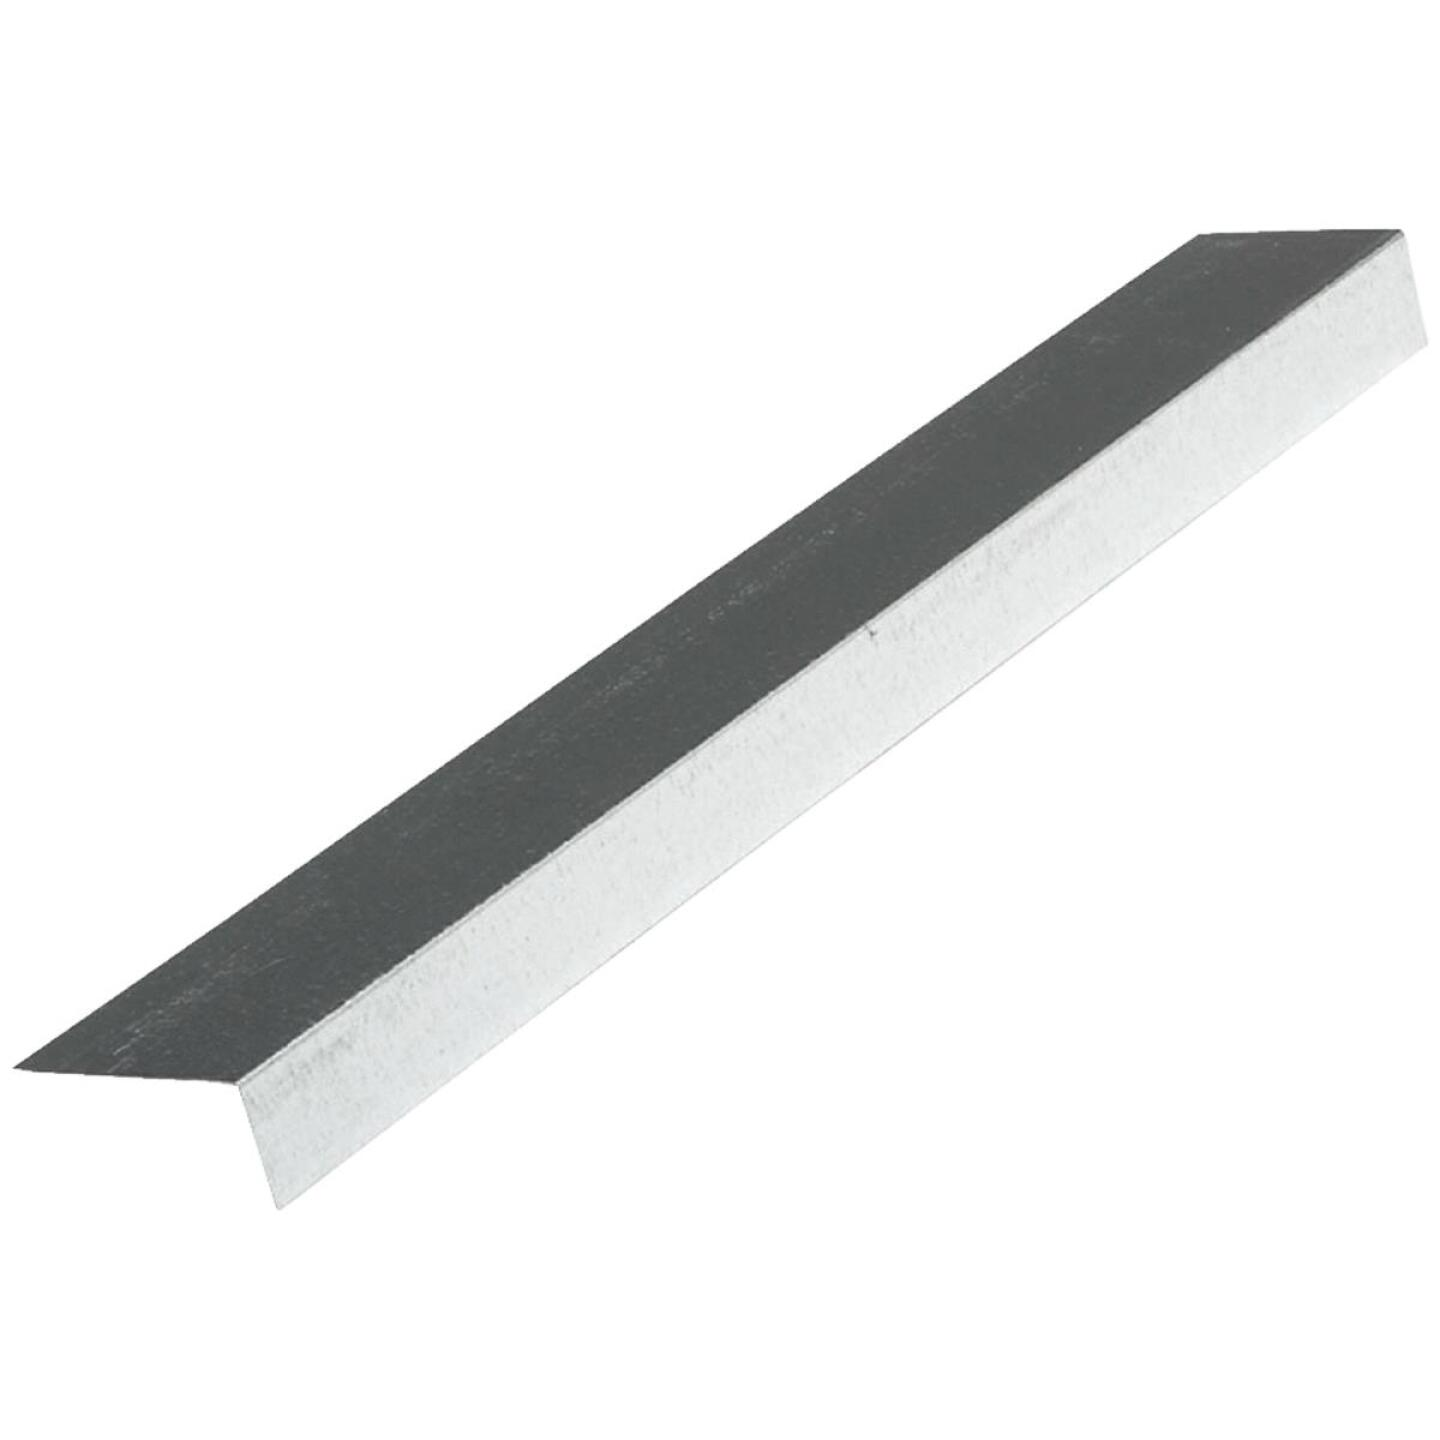 NorWesco A 1 In. X 2 In. Galvanized Steel Roof & Drip Edge Flashing Image 1